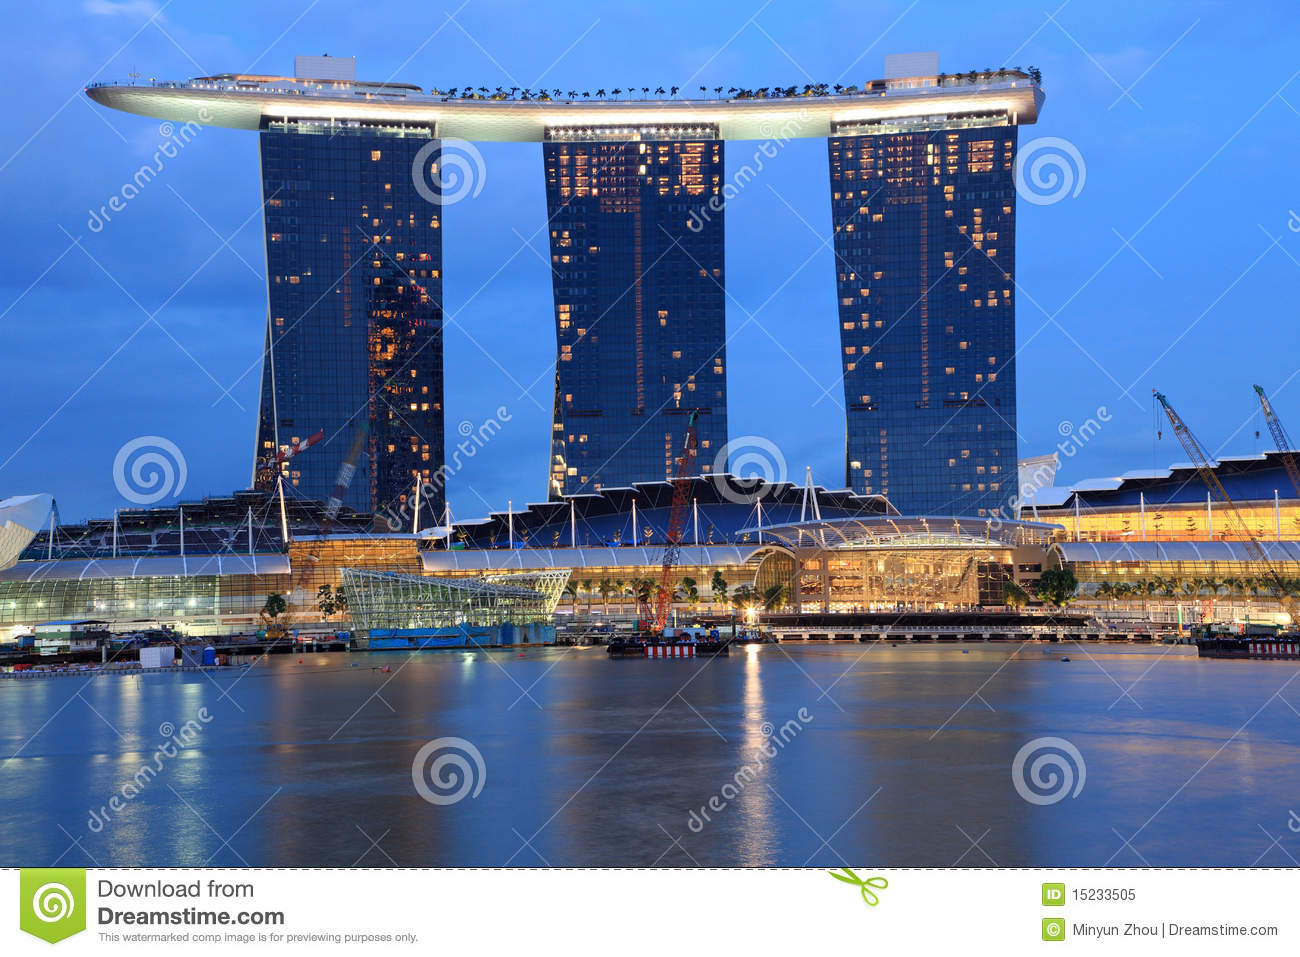 Gold Sand Casino Singapore Stock Photos, Images, & Pictures.